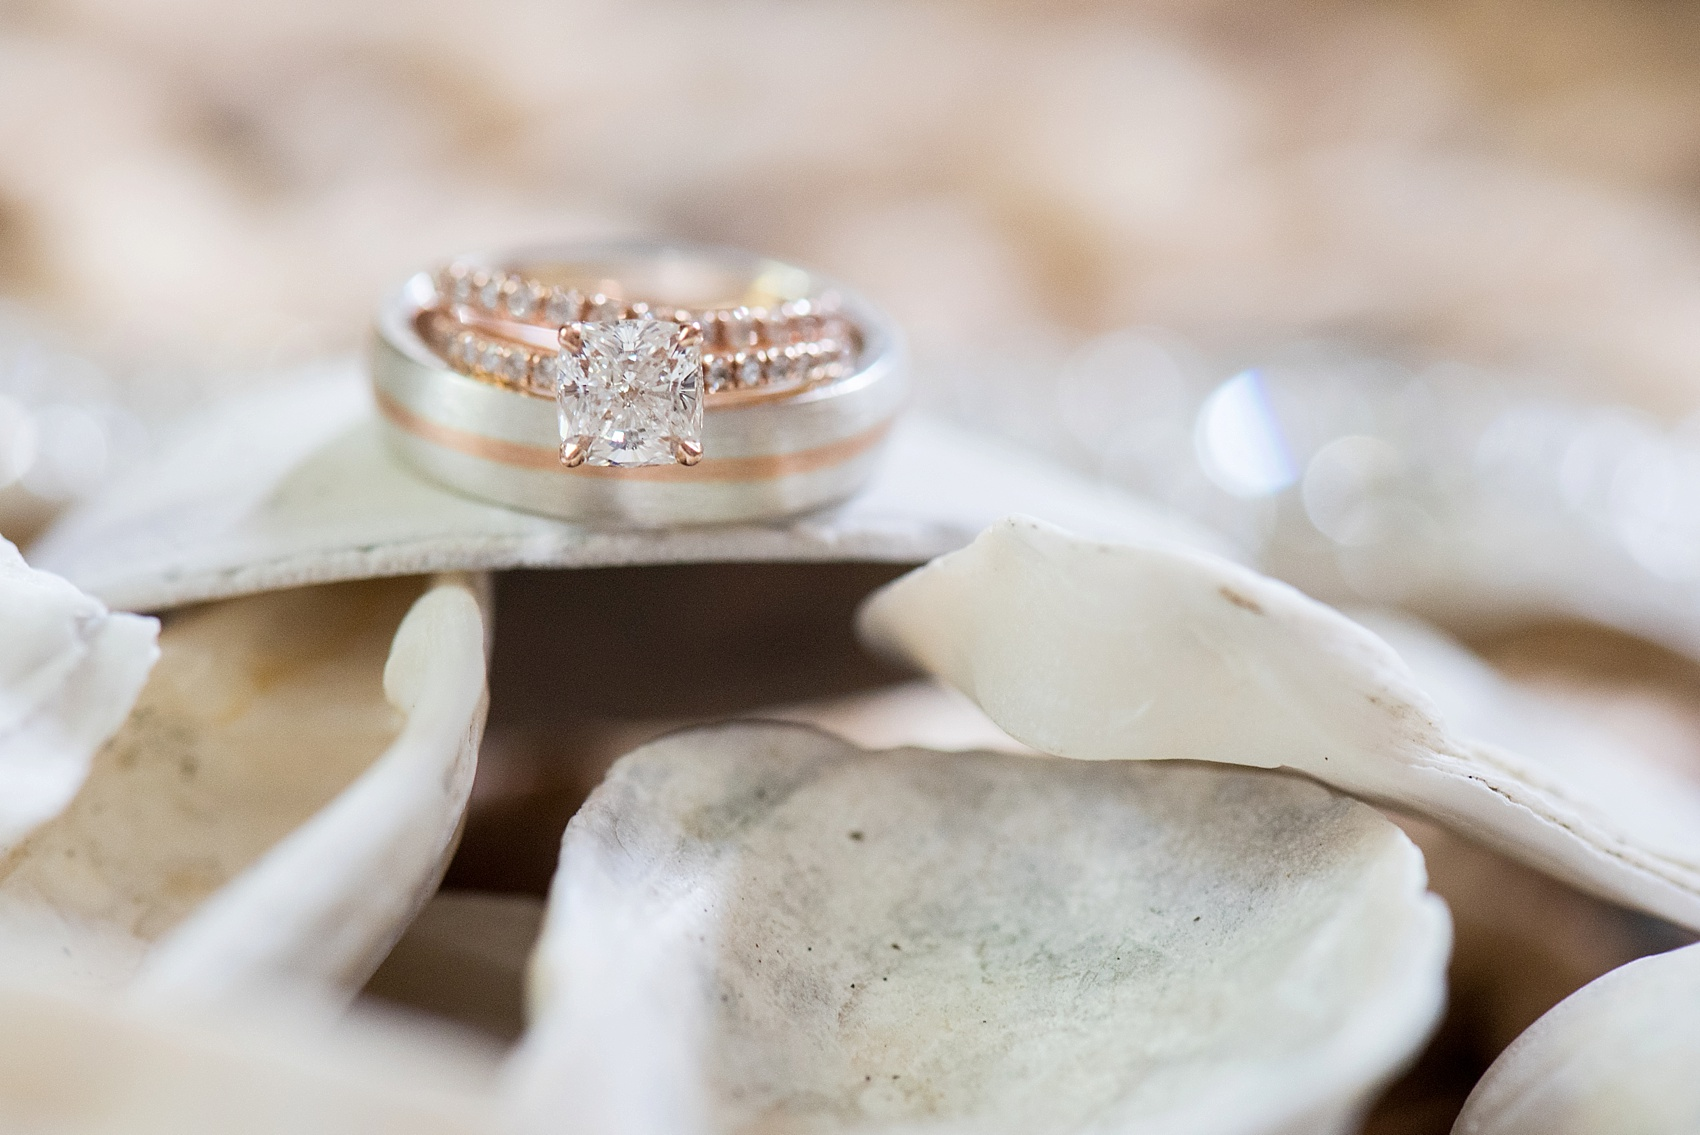 Rose gold rings for a southern wedding complete with oyster shells. Ring shot detail photo by Mikkel Paige in Hilton Head, Haig Point, South Carolina.